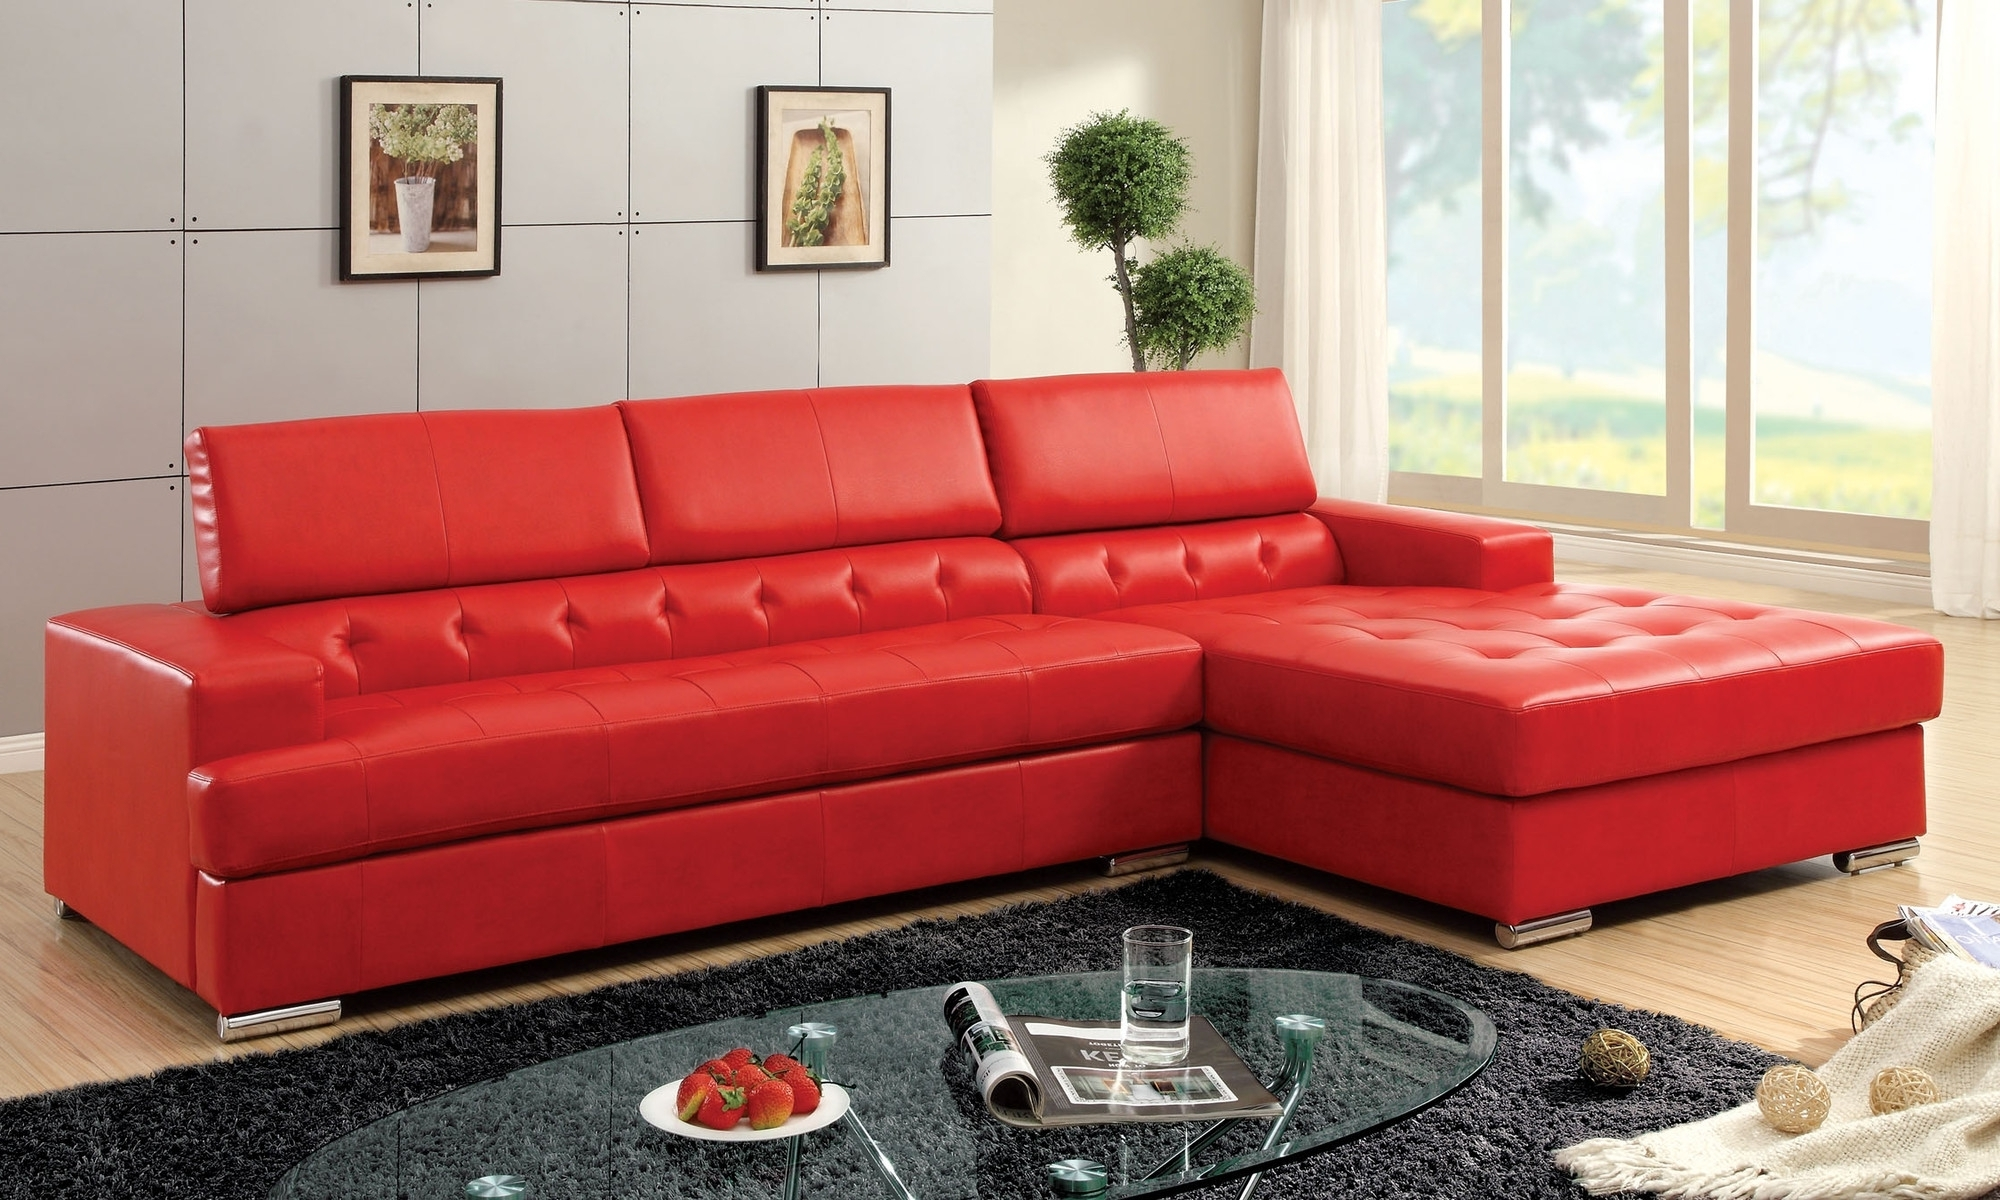 Small Red Leather Sectional Sofa • Leather Sofa Regarding Favorite Small Red Leather Sectional Sofas (View 2 of 20)